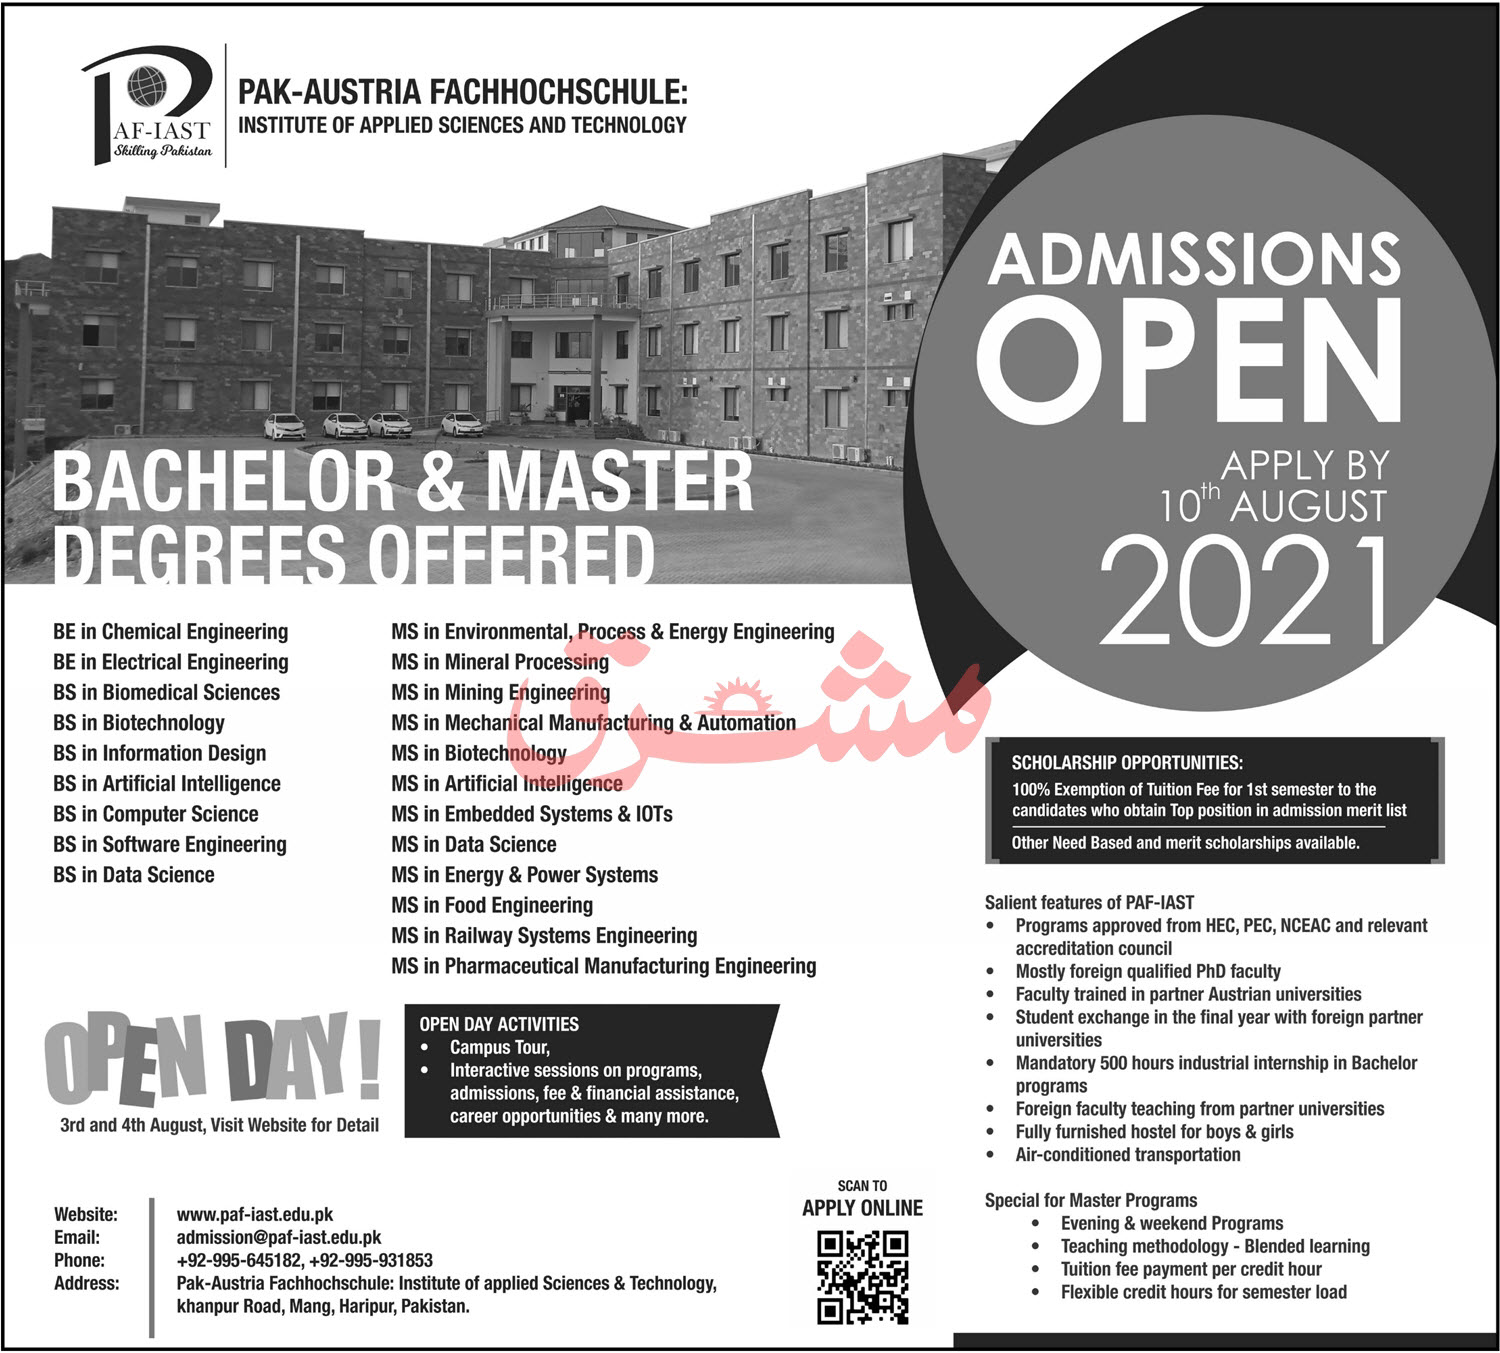 Pak Austria Fachhochschule Institute Of Applied Science & Technology Haripur Admissions